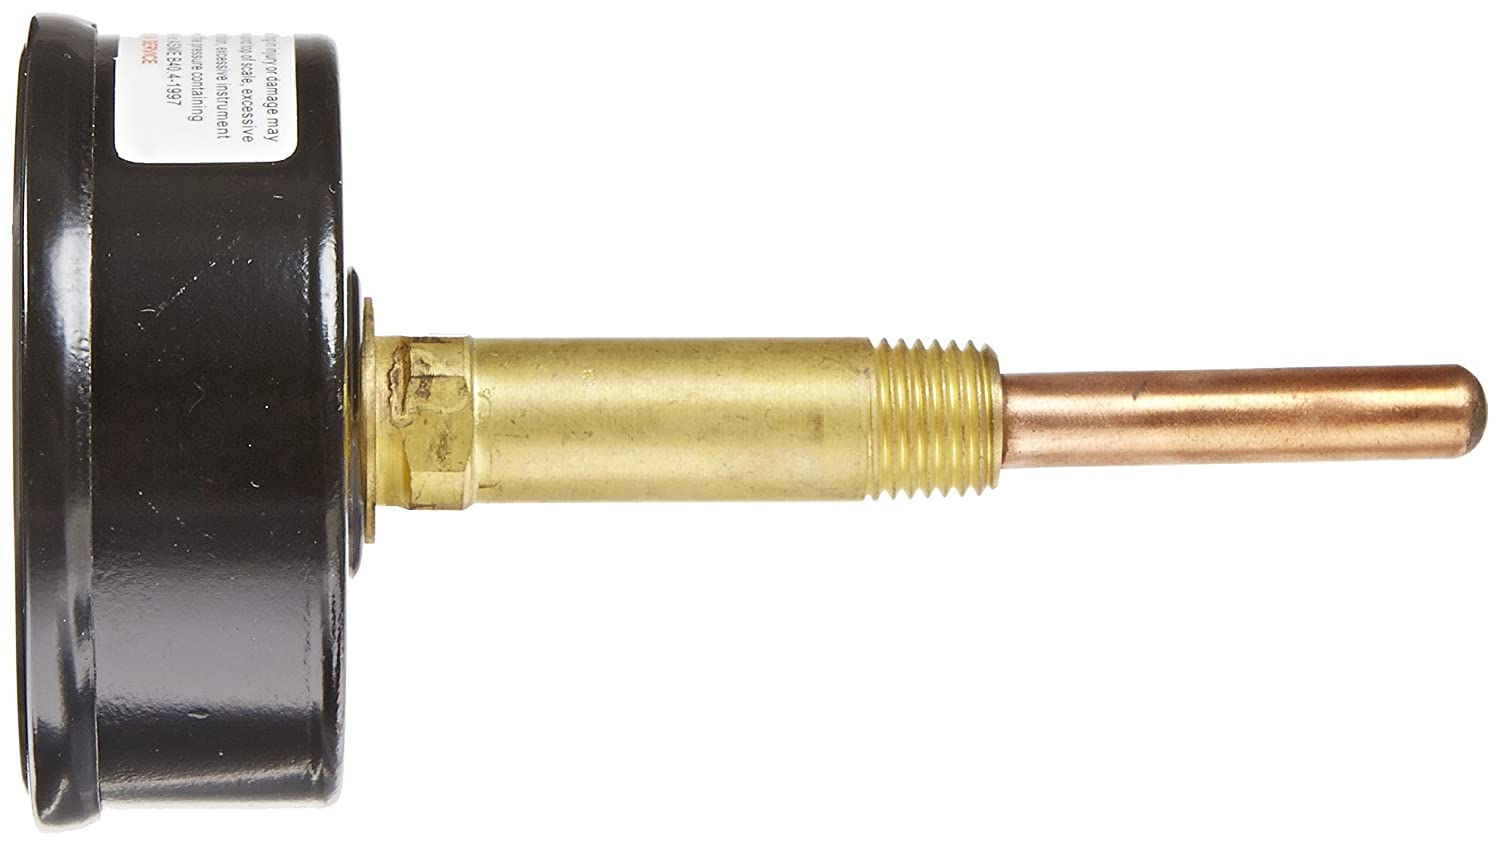 1//4 Male NPT Connection Size 0//75 psi Range Commercial Tridicators with Black Steel Case Stem Length 3.63 inches PIC Gauge TRI-RC-254R3.63-D 2-1//2 Dial Size Plastic Lens with Red Indicator Bronze Internals